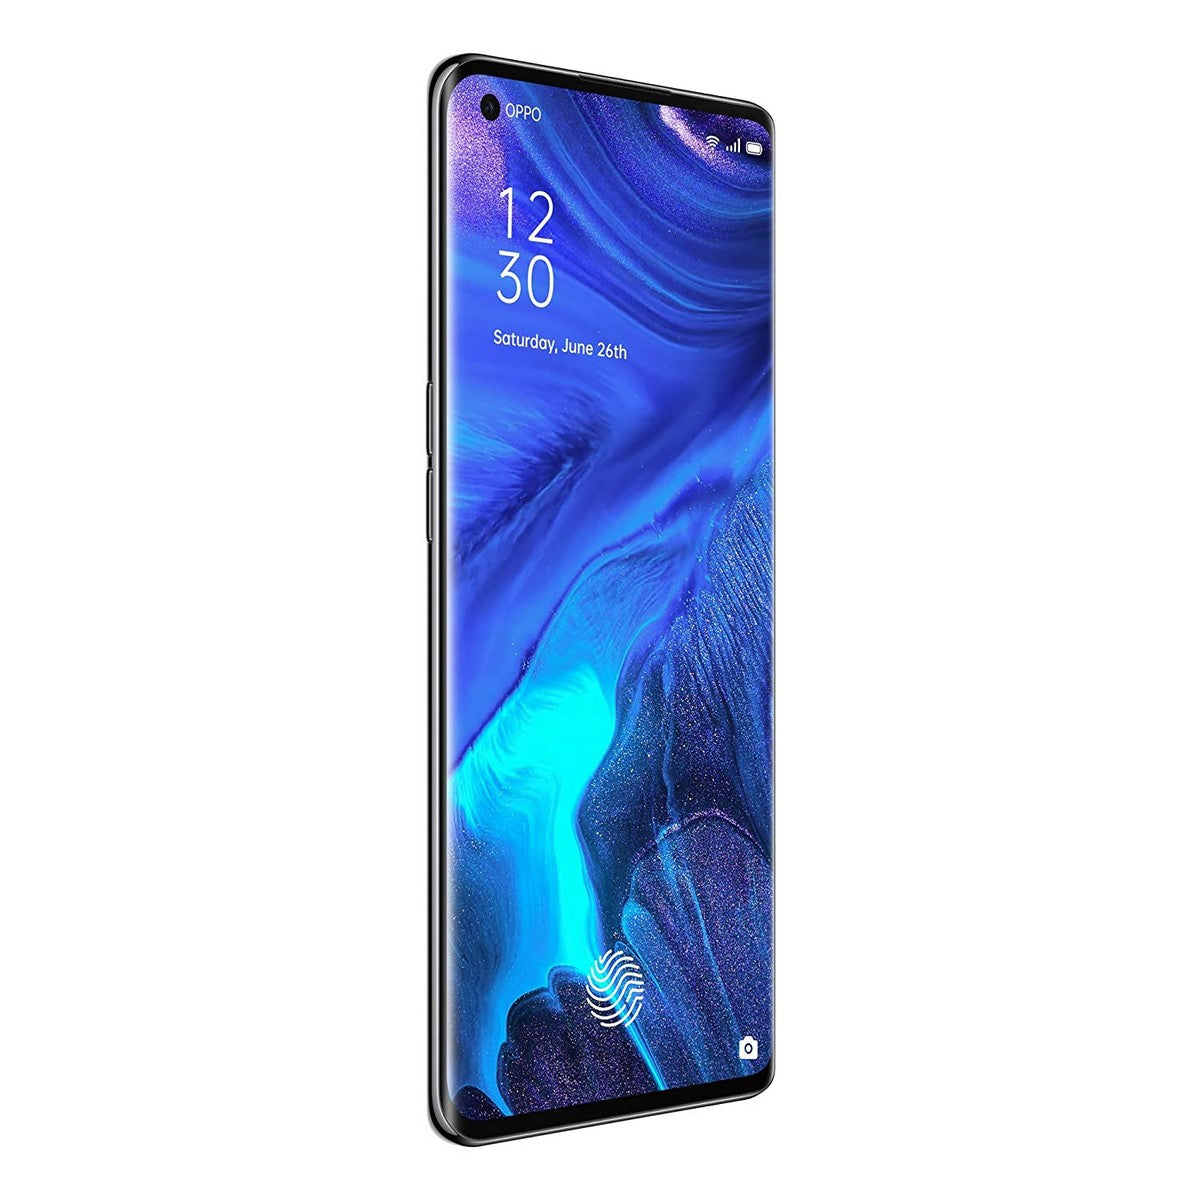 Oppo Reno 4 Pro - 6.5 Inch - 256GB/8GB Mobile Phone, Starry Night